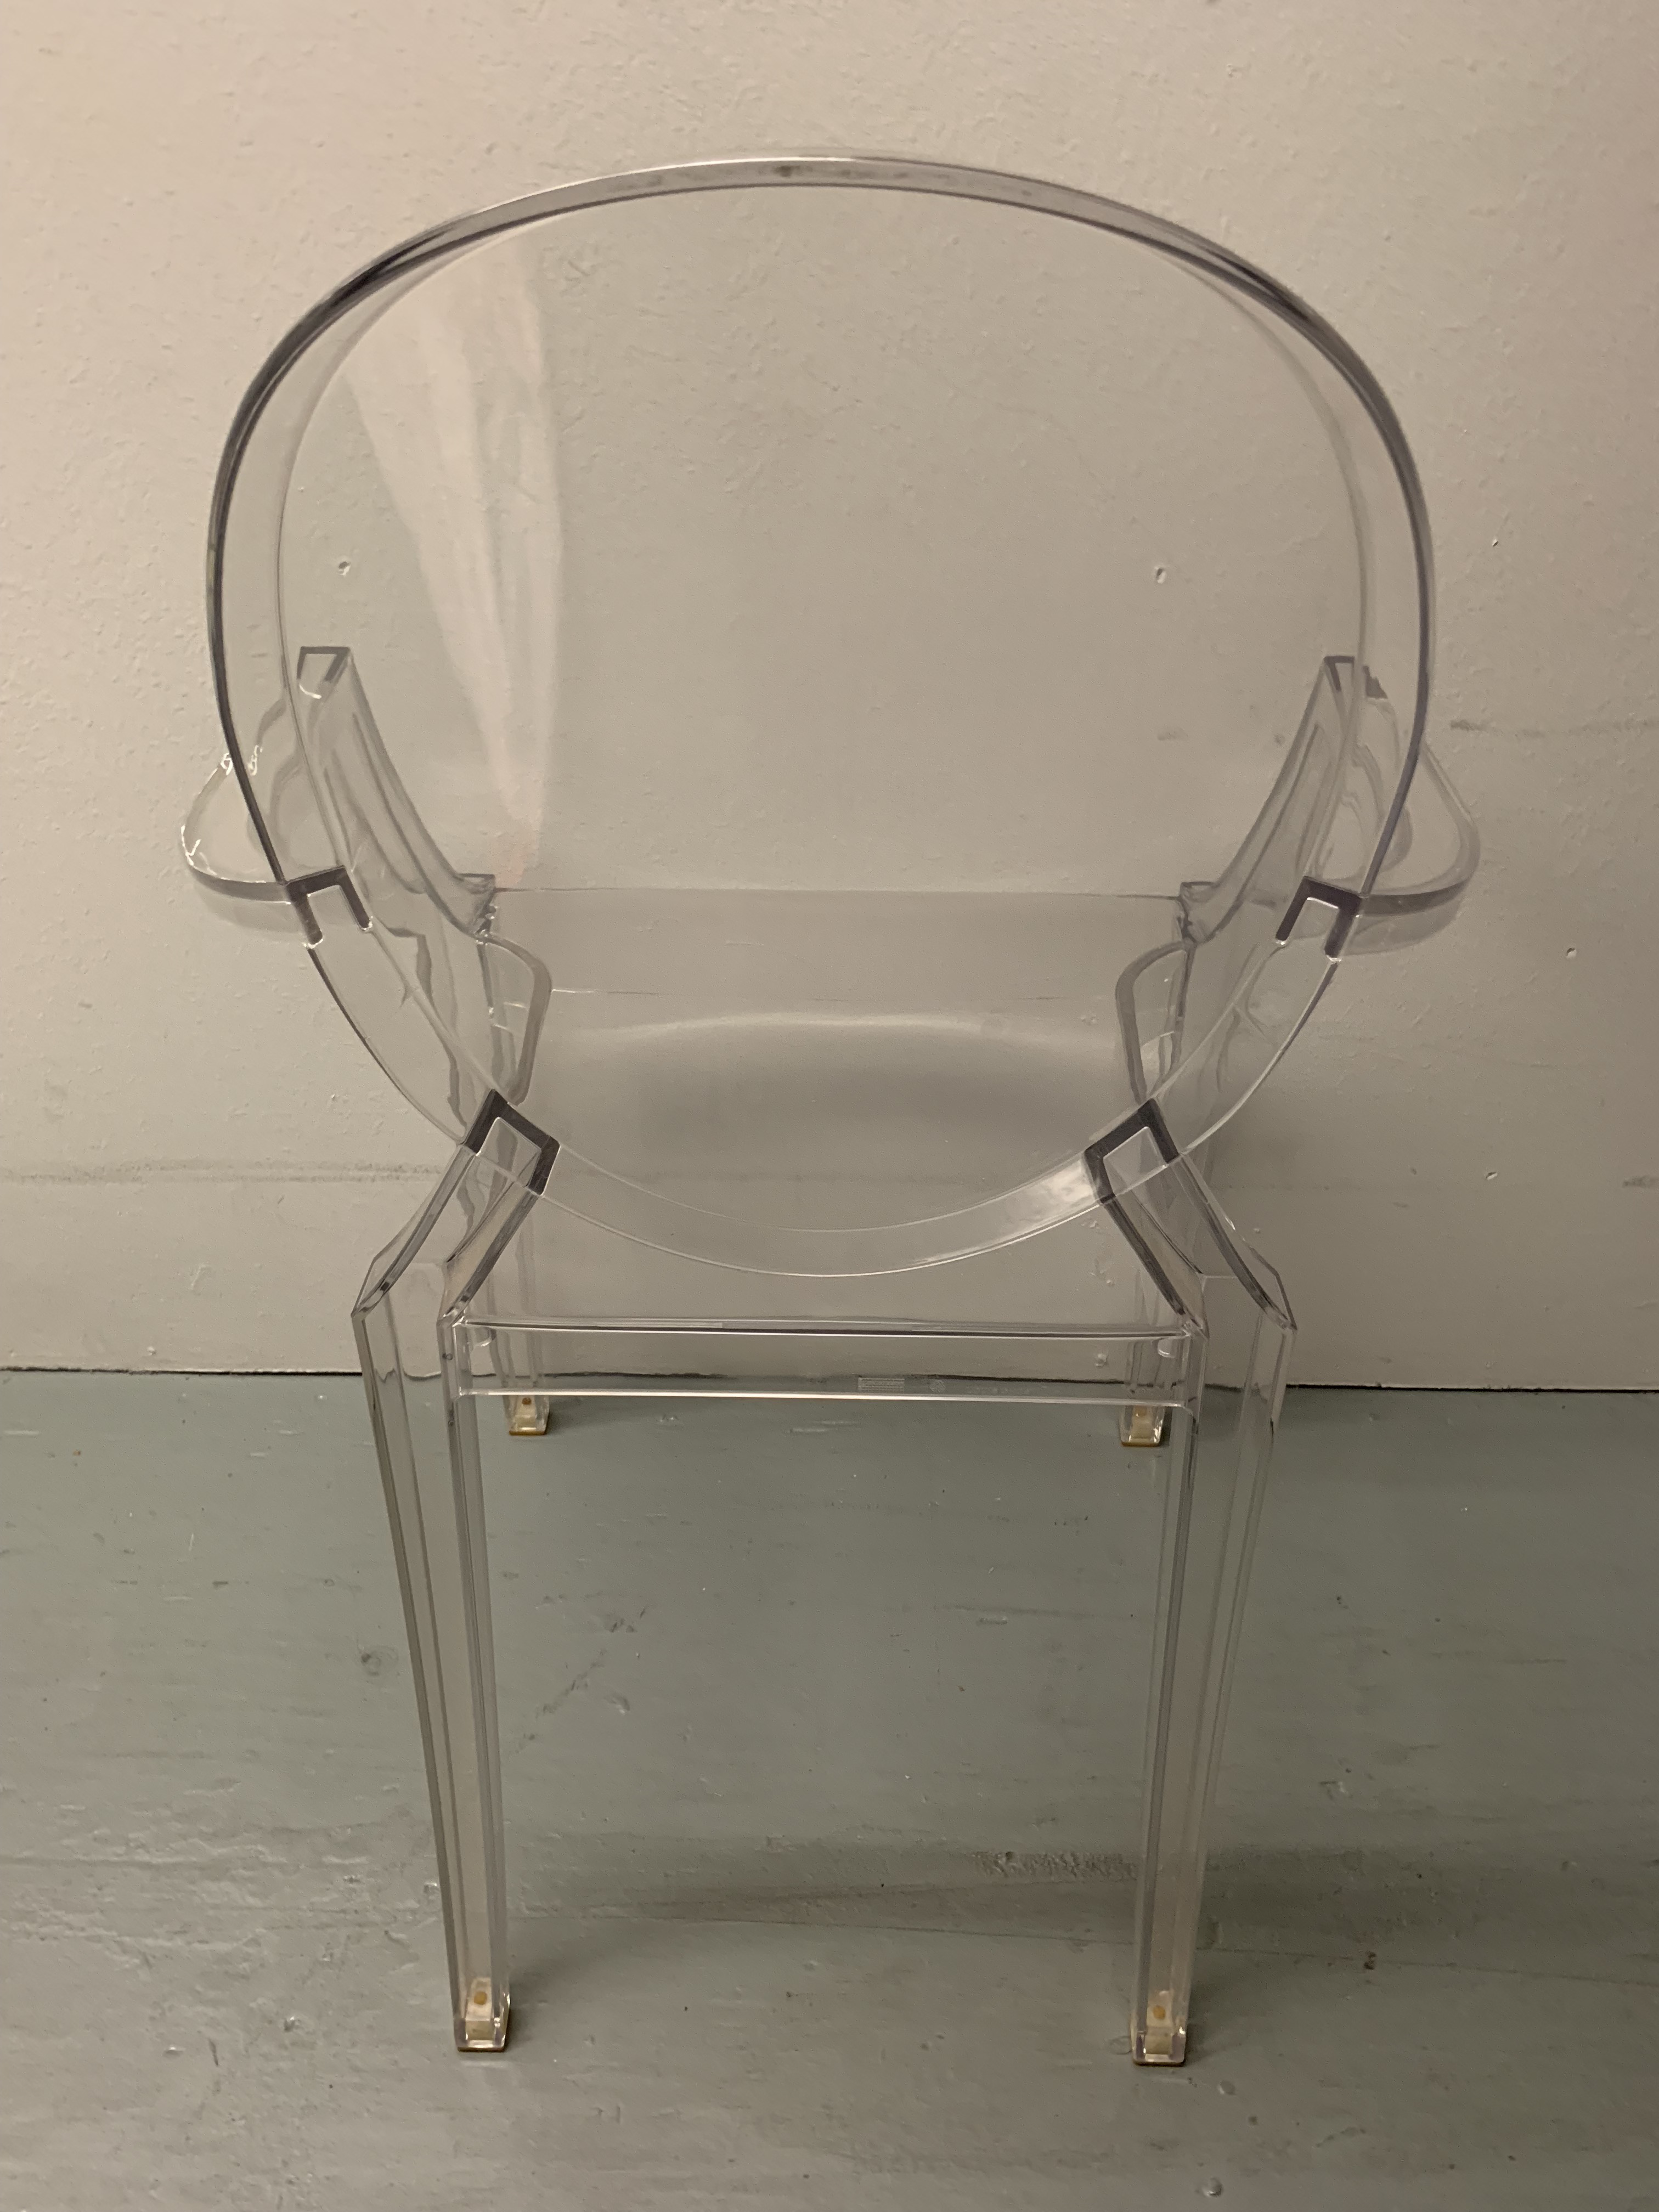 Boho Chic 1990s Vintage Kartell Philippe Starck Ghost Chair For Sale - Image 3 of 5  sc 1 st  Chairish & 1990s Vintage Kartell Philippe Starck Ghost Chair | Chairish